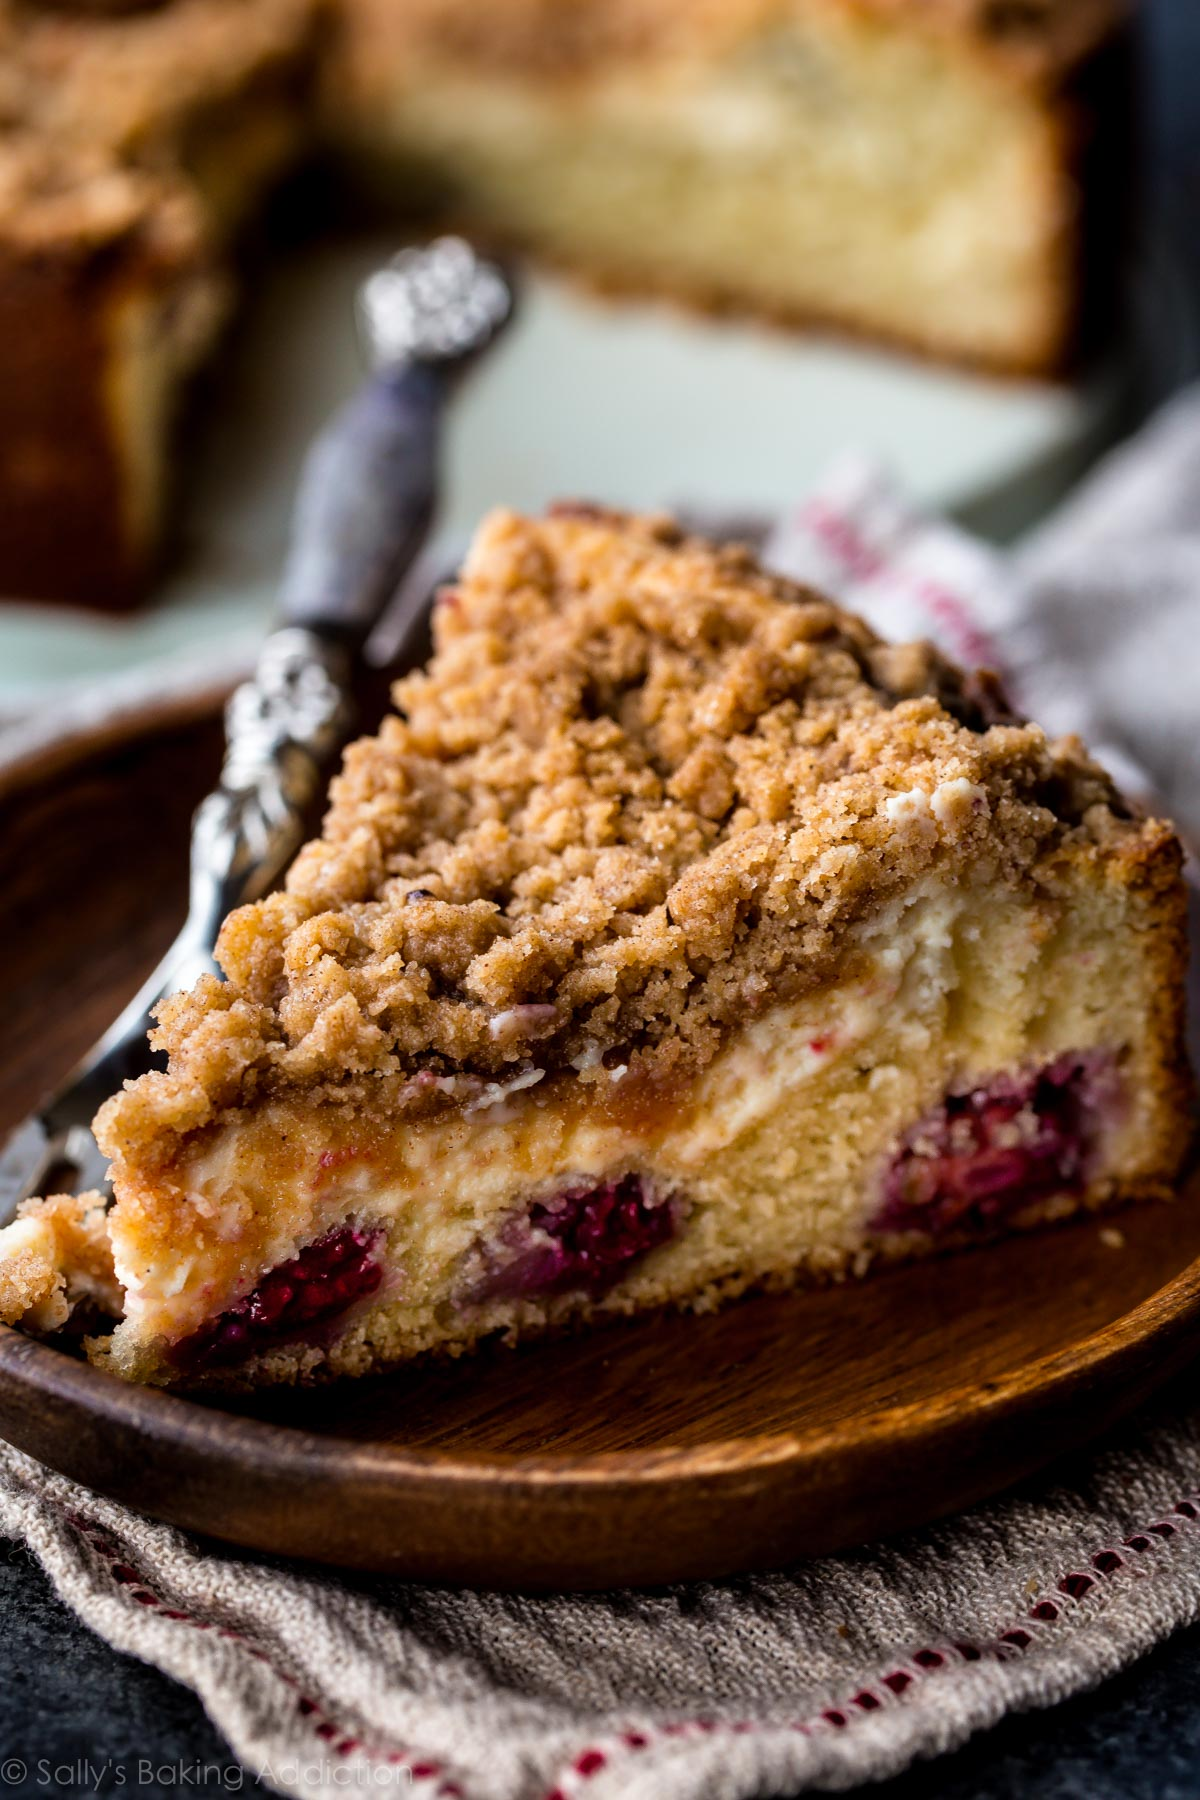 Blackberry Cream Cheese Crumb Cake